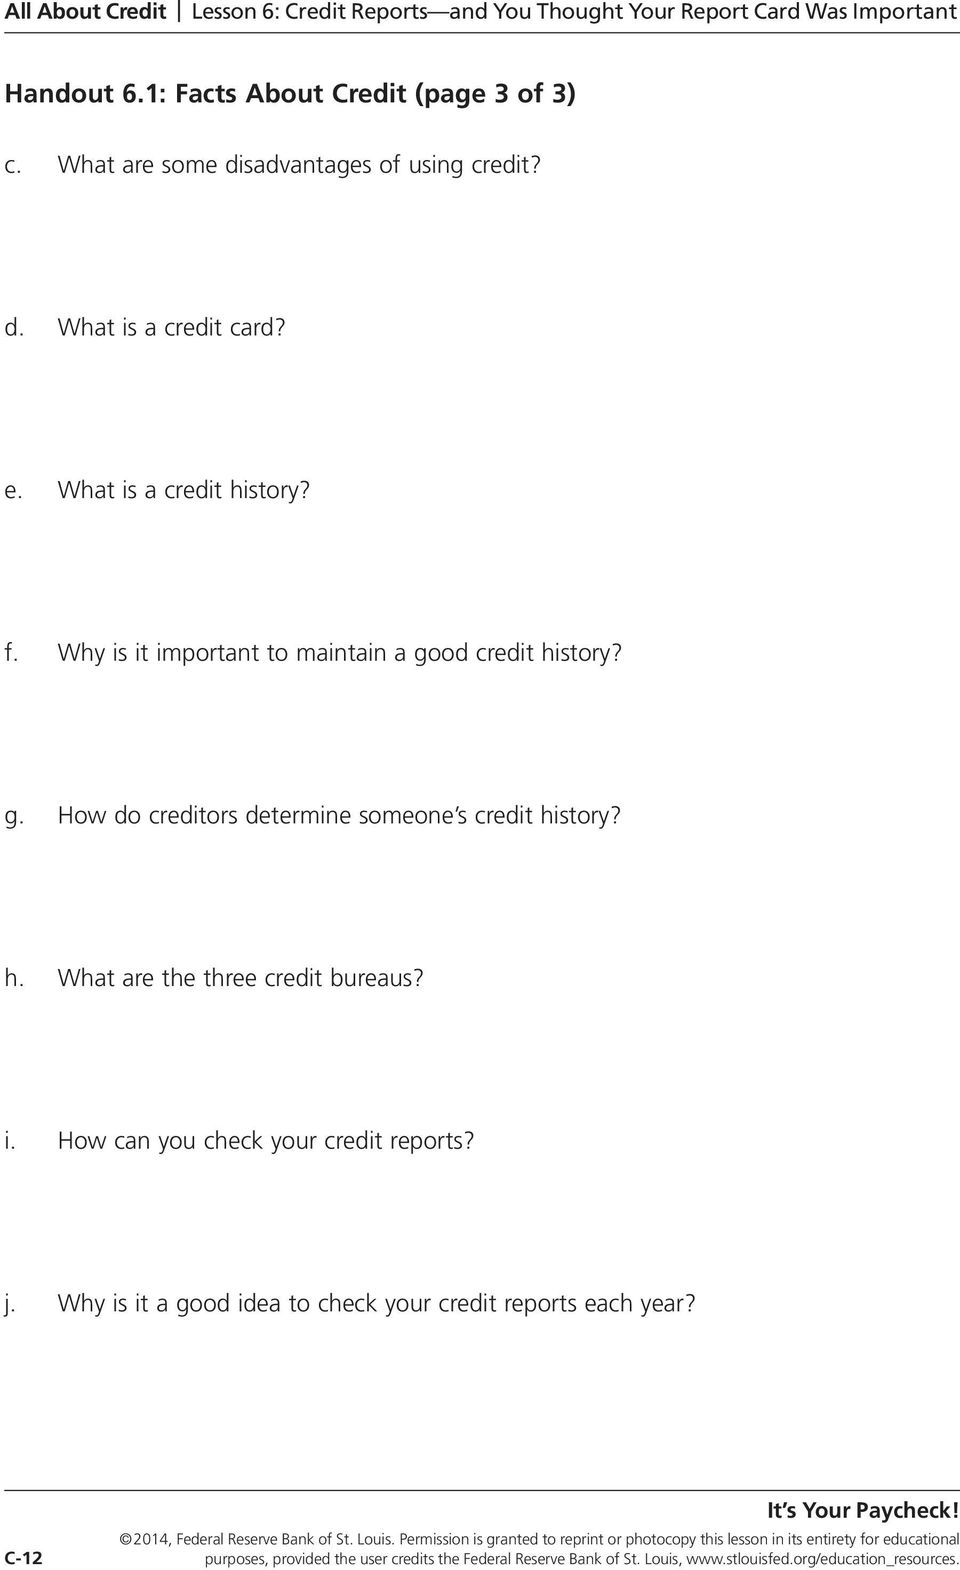 j. Why is it a good idea to check your credit reports each year? 2014, Federal Reserve Bank of St. Louis.